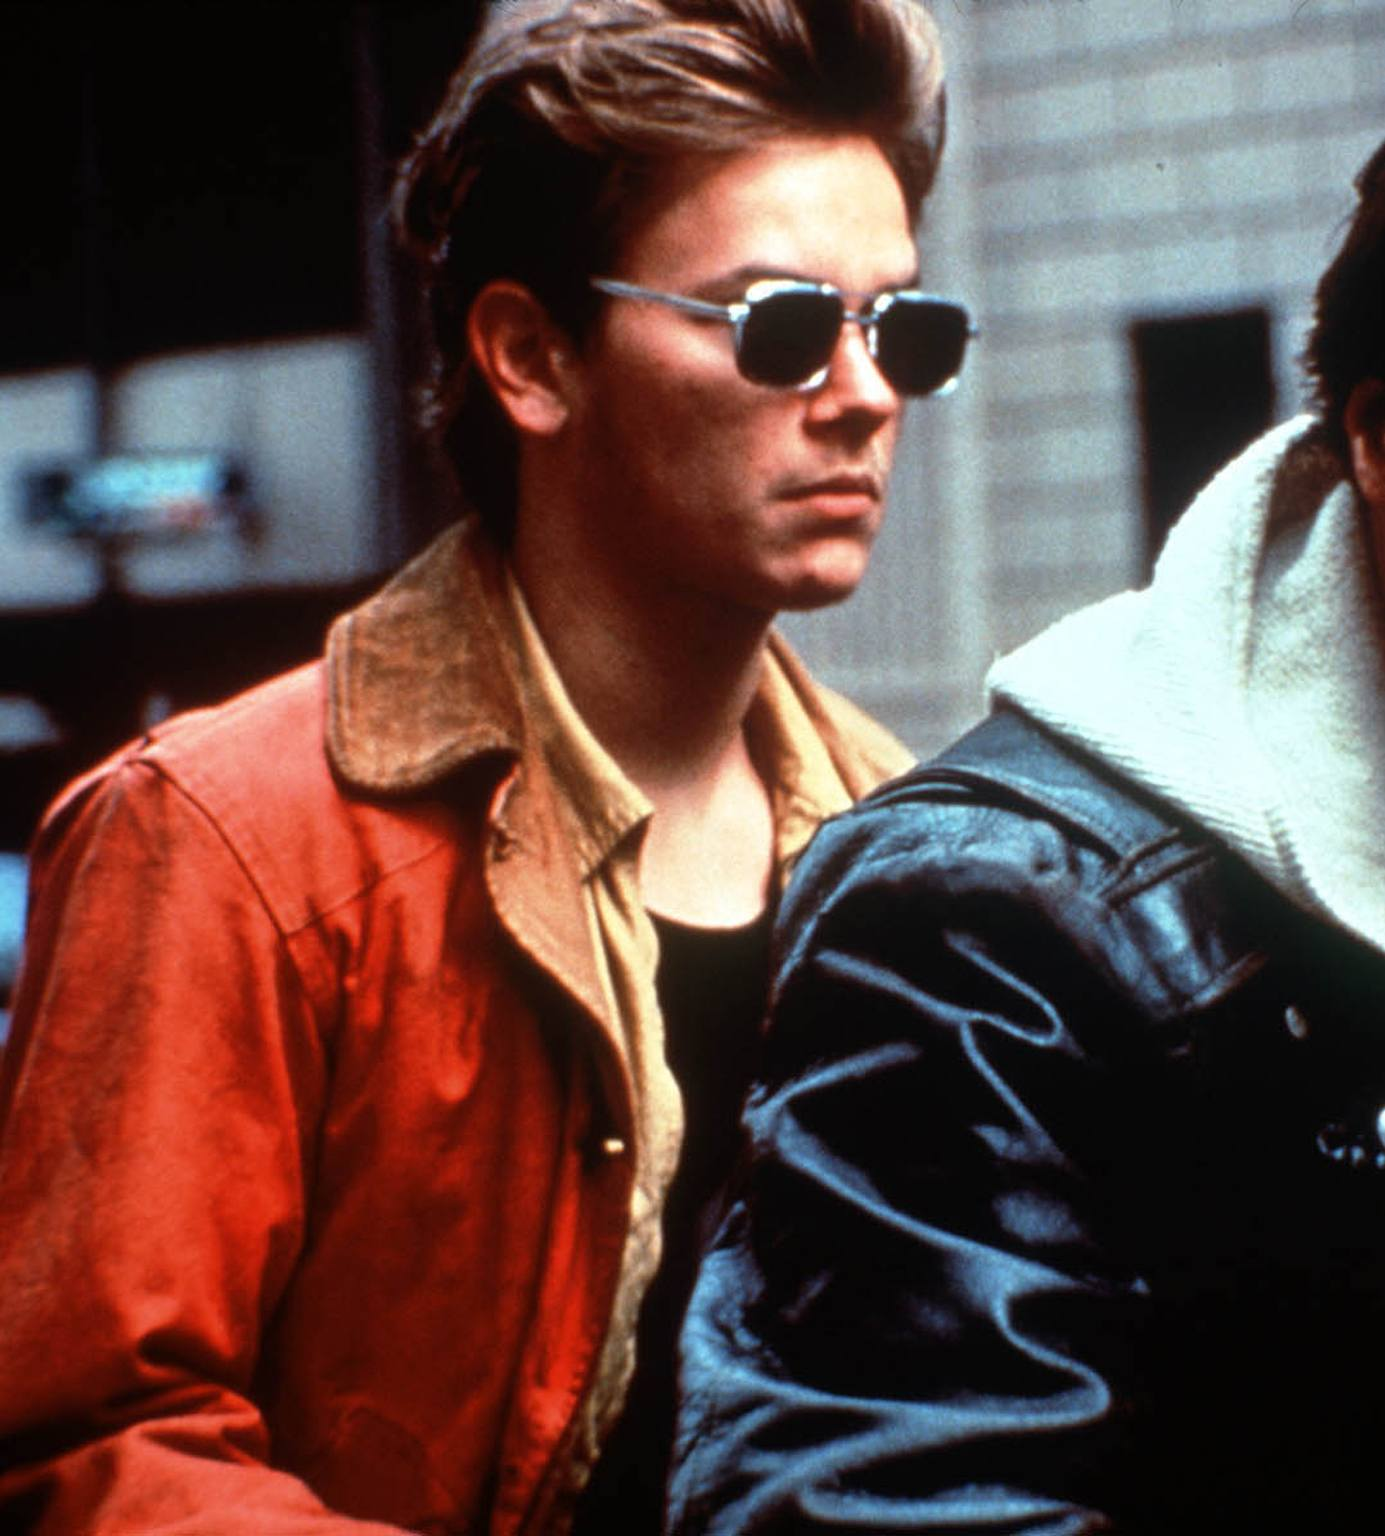 River Phoenix as Mike Waters in My Own Private Idaho (1991)